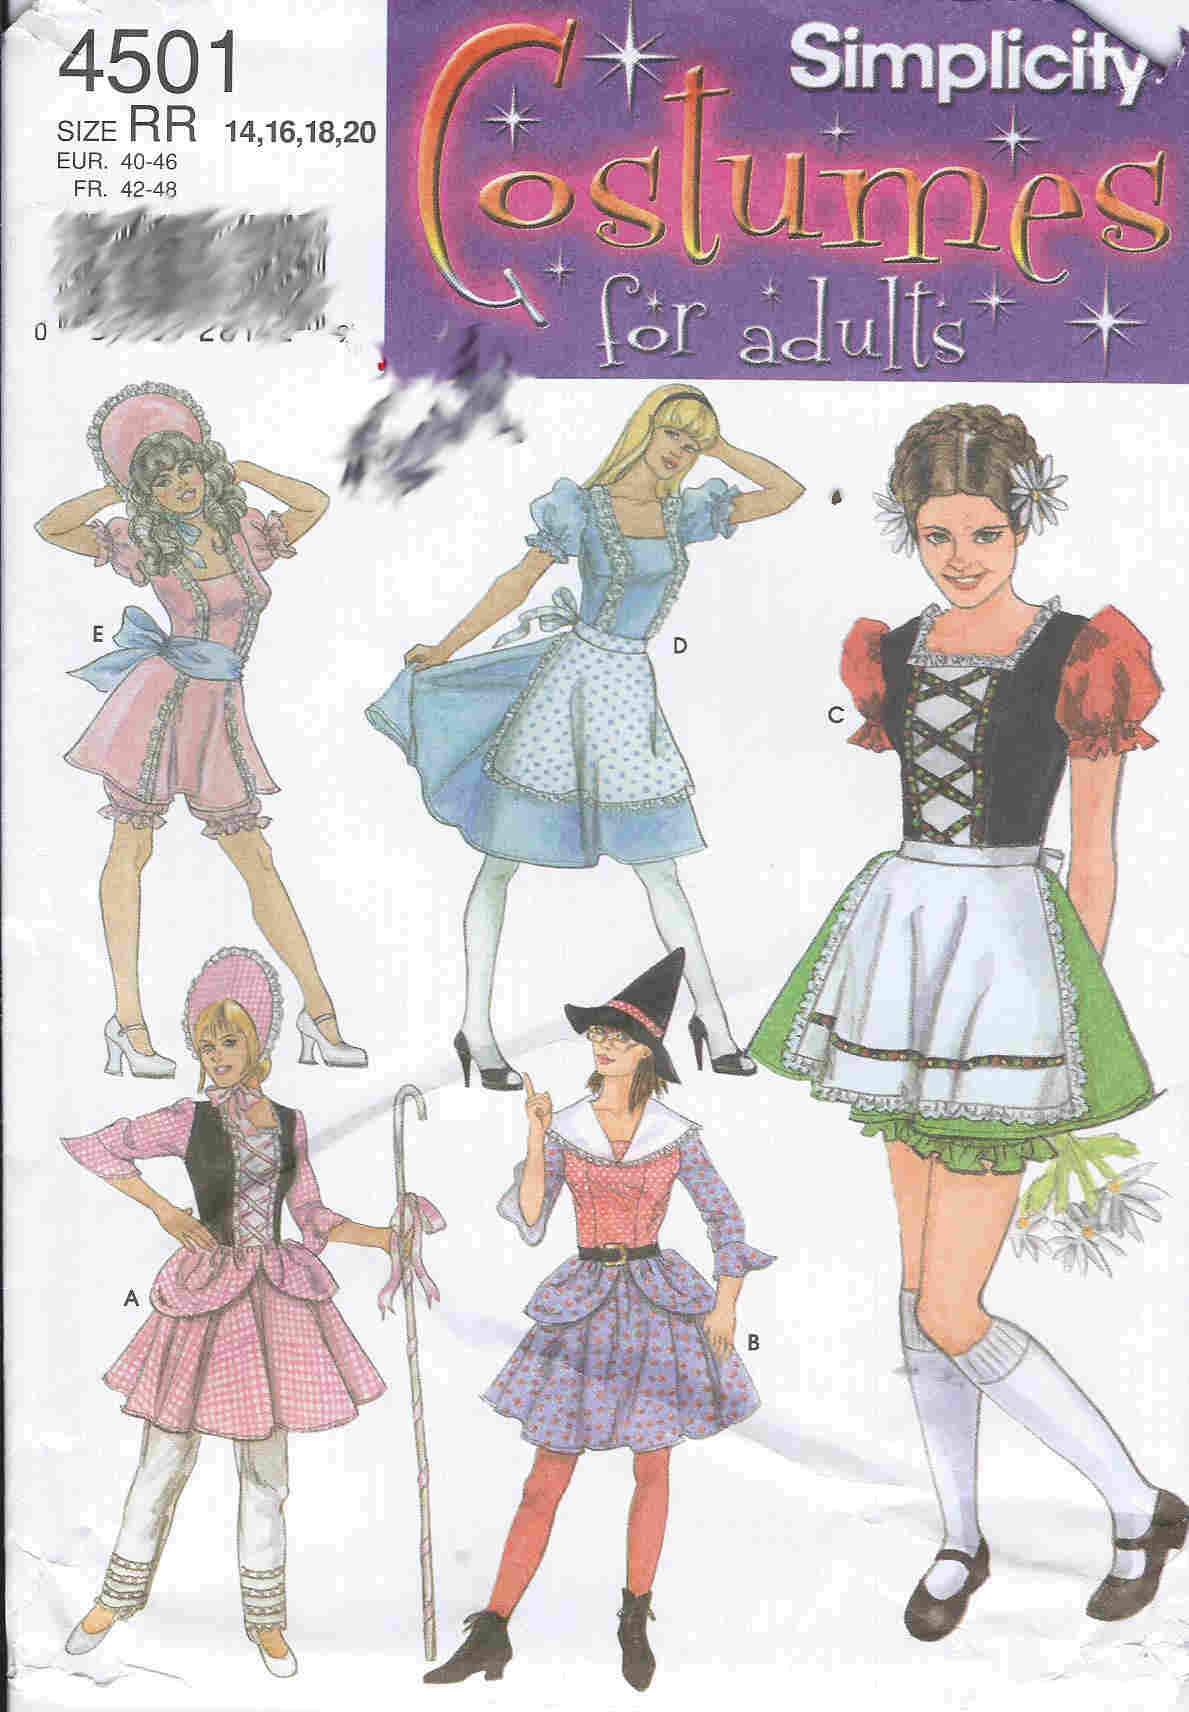 DellaJane Sewing Patterns For Costumes: Cartoon Movie Superheros ...